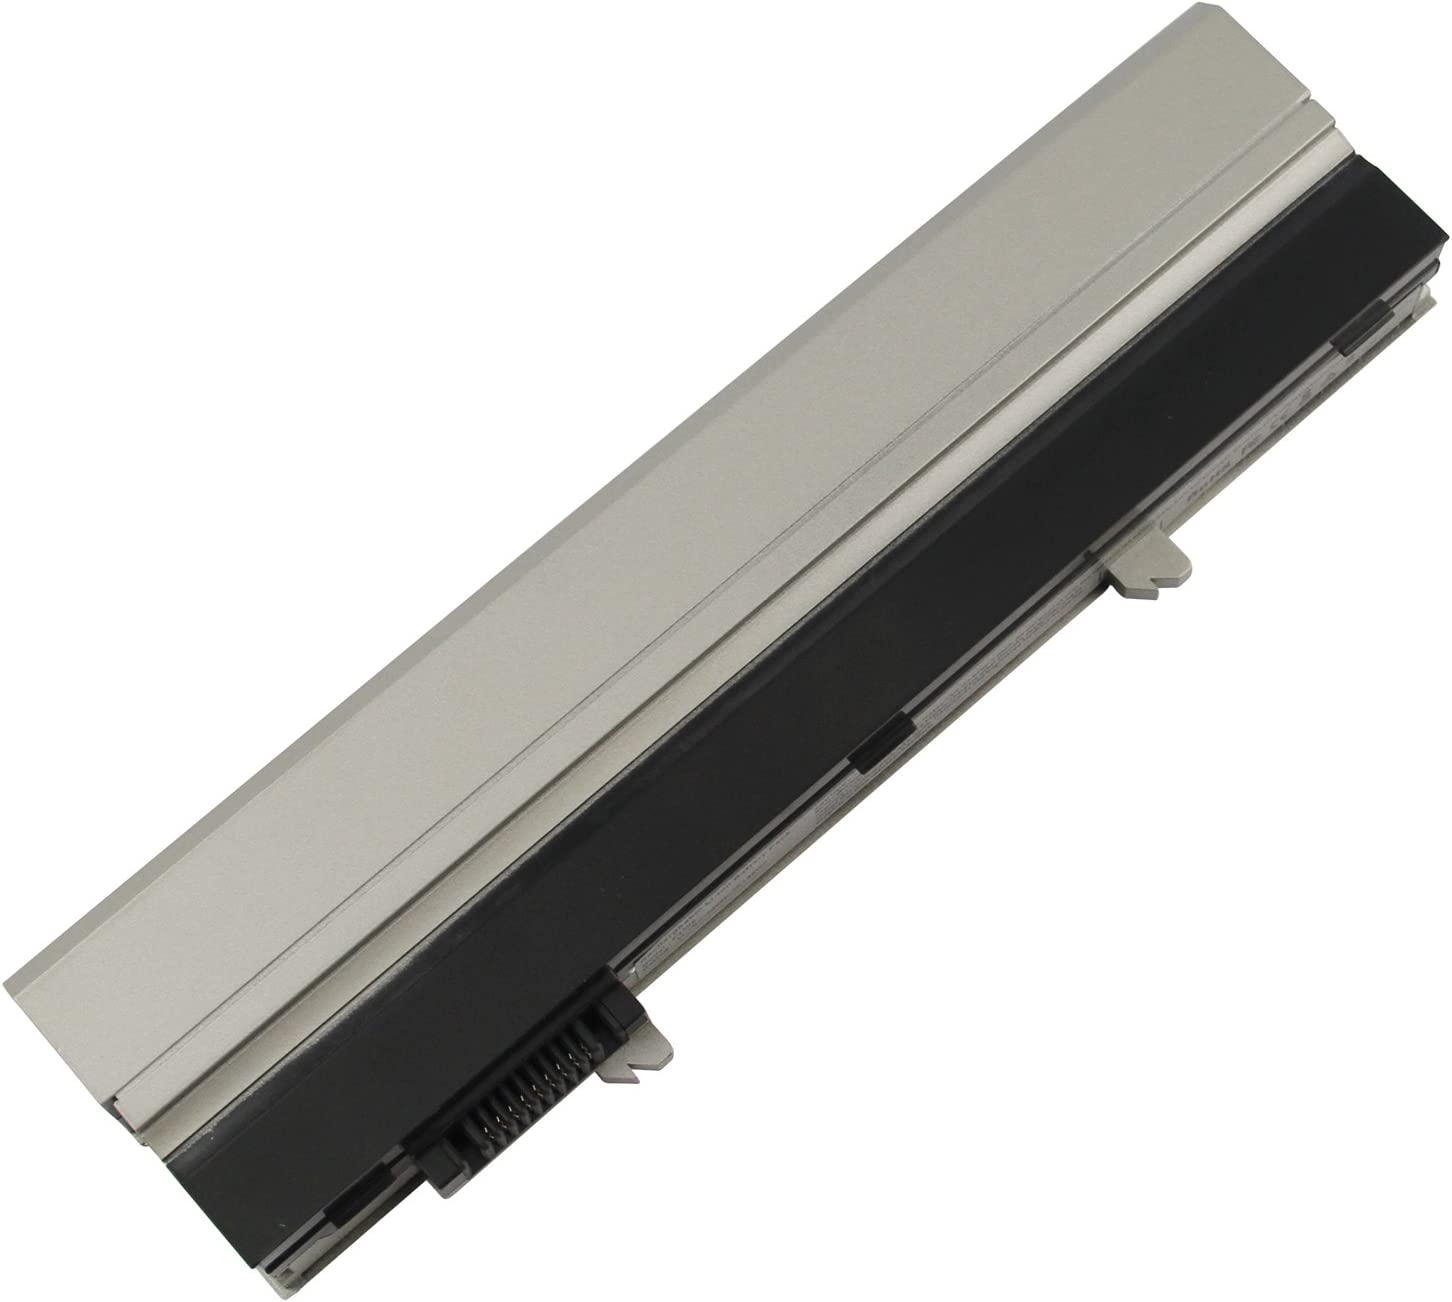 Futurebatt Laptop Battery 6Cell for Dell Latitude E4300 E4300N E4310 E4320 E4400 Battery P/N HW905 XX334 G805H